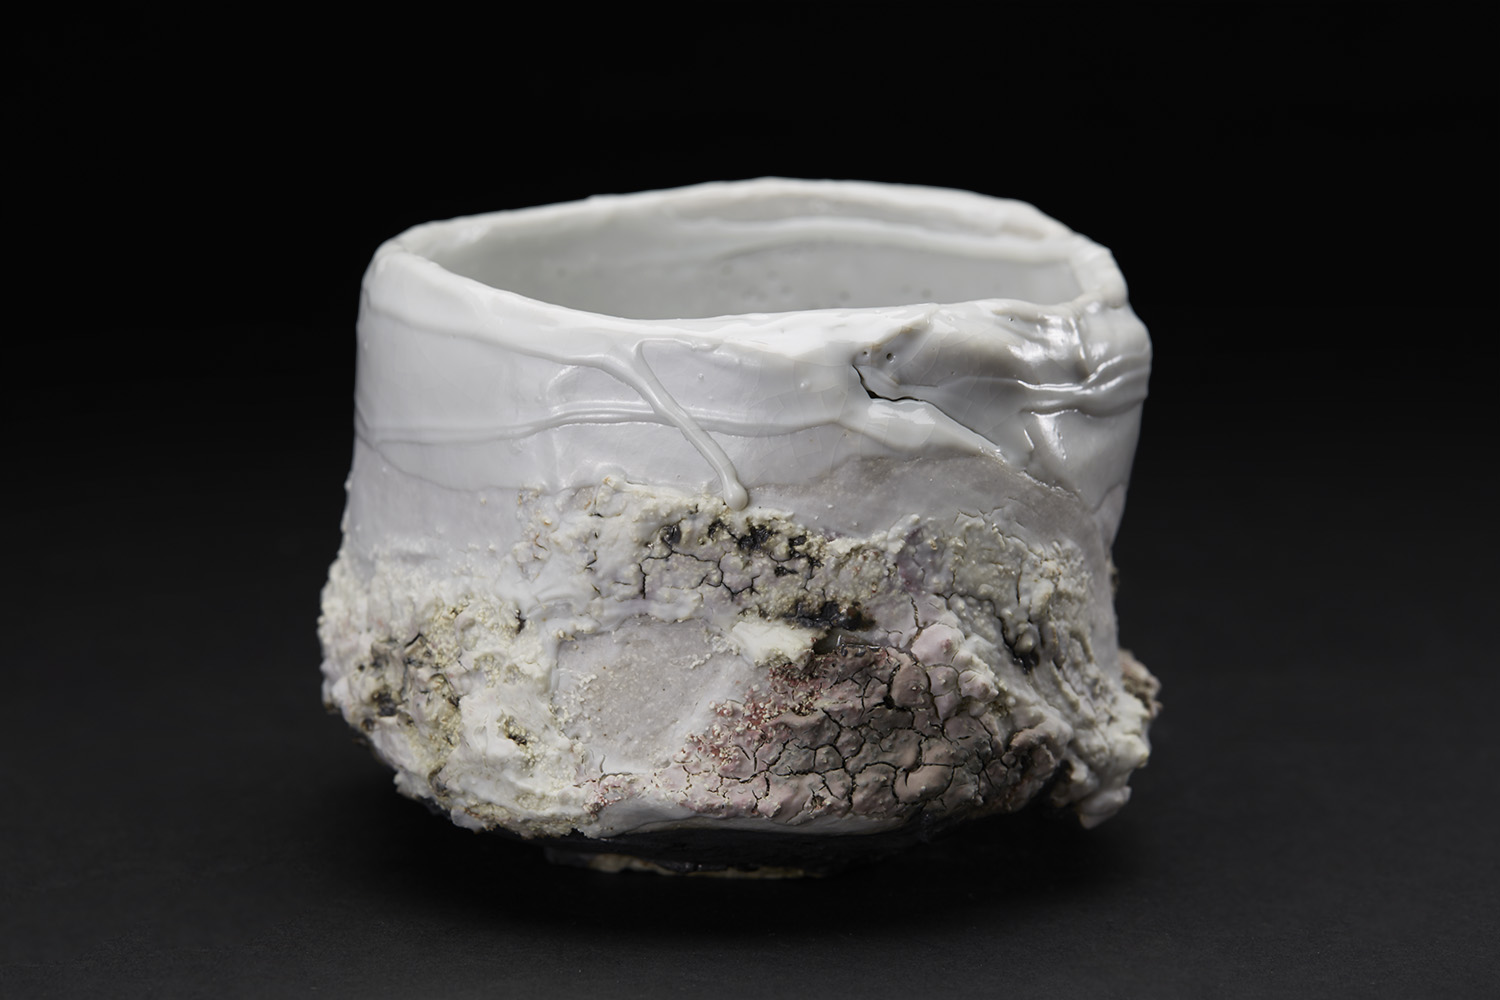 Eddie Curtis Chawan, 2016 Stoneware, reduction fired in brick built oil kiln at 1300 Celsius. Kurinuki technique, applied texture and oxides to outer surface, snow white shino to rim and inner surface 3.15 x 4.72 x 4.72 inches 8 x 12 x 12 cm ECu 10